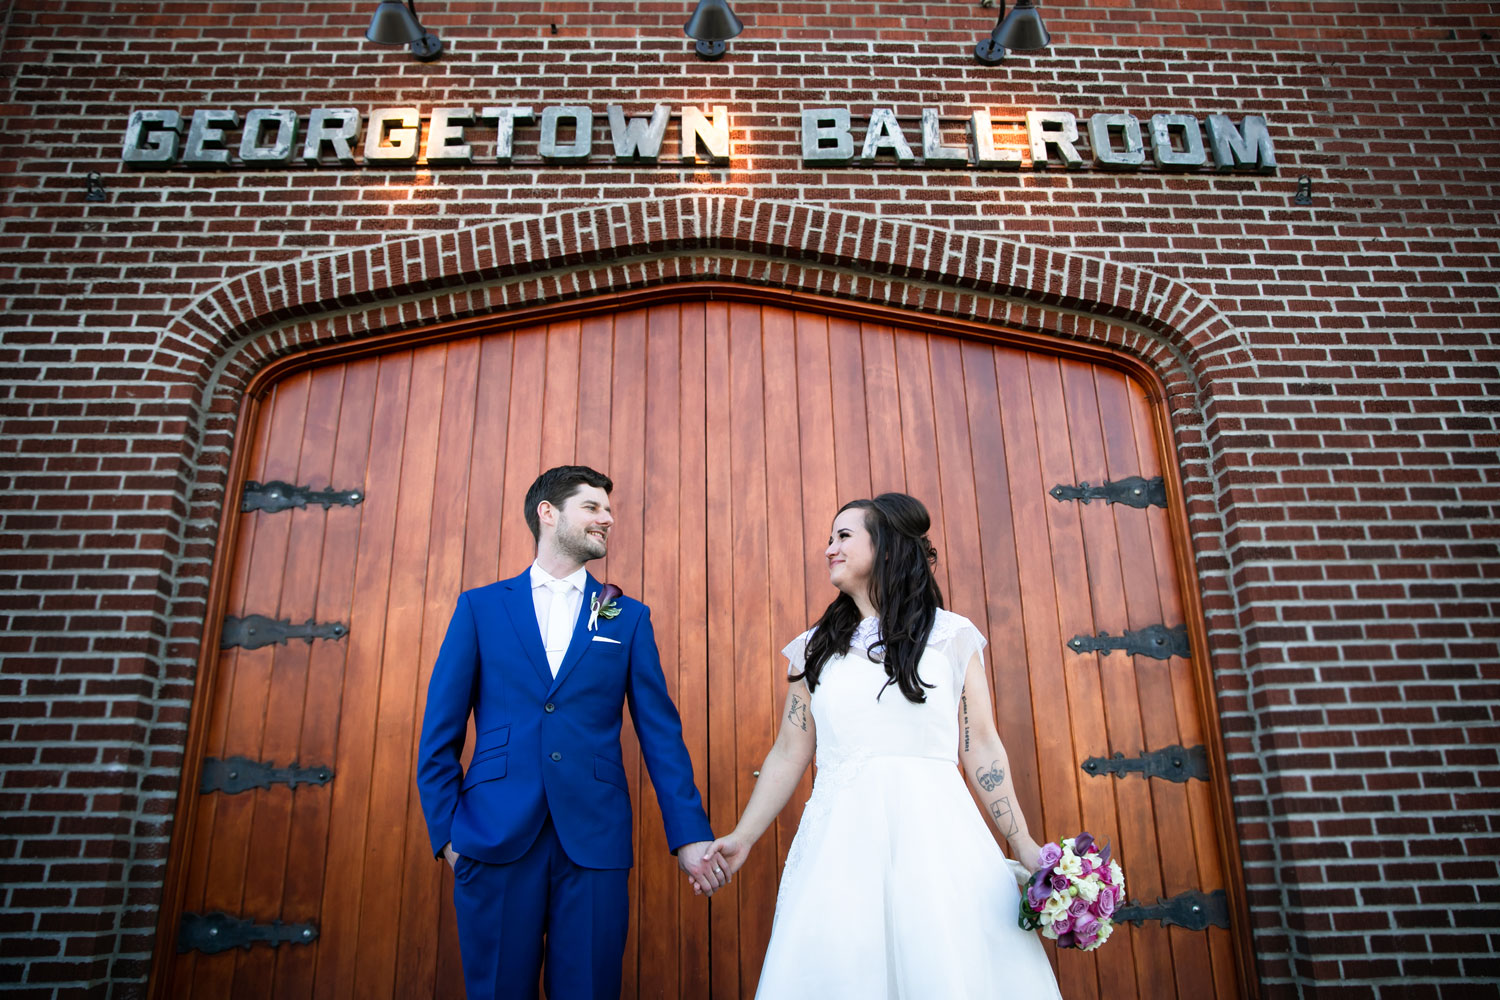 Georgetown Ballroom Wedding